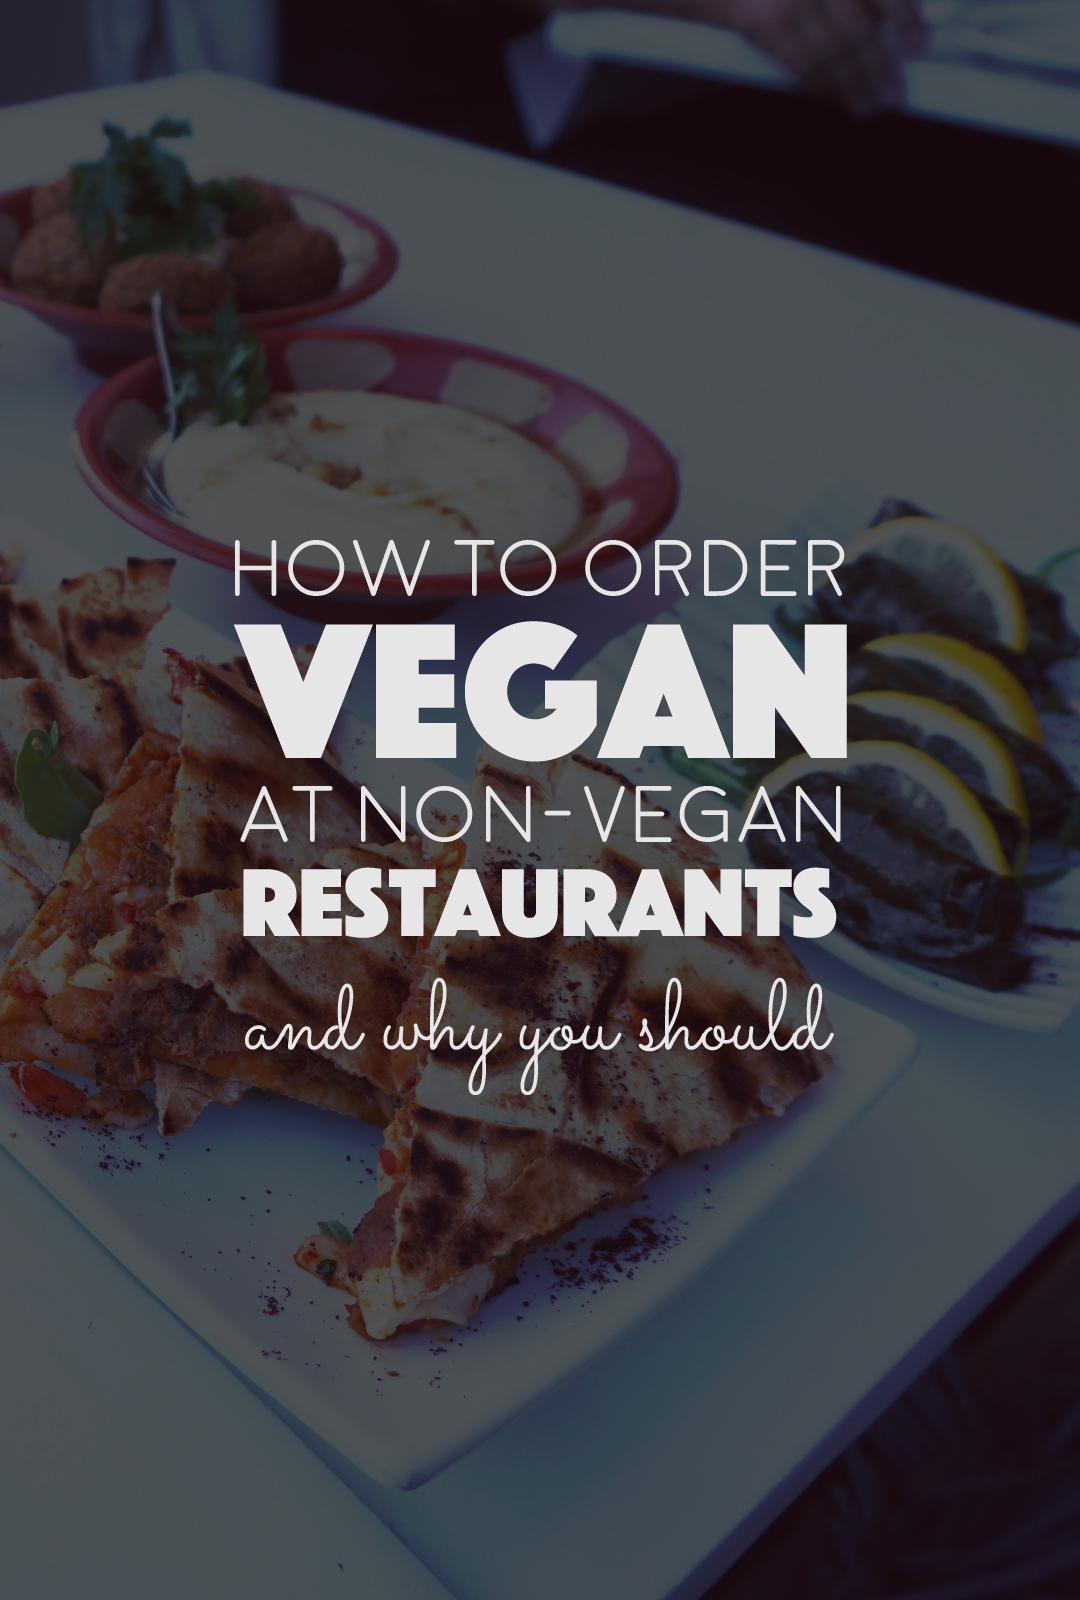 How To Order Vegan At Non-Vegan Restaurants (and why you should) |http://BananaBloom.com Vegan Food, Plant based food, nutrition, health, restaurants, dining out as a vegan.